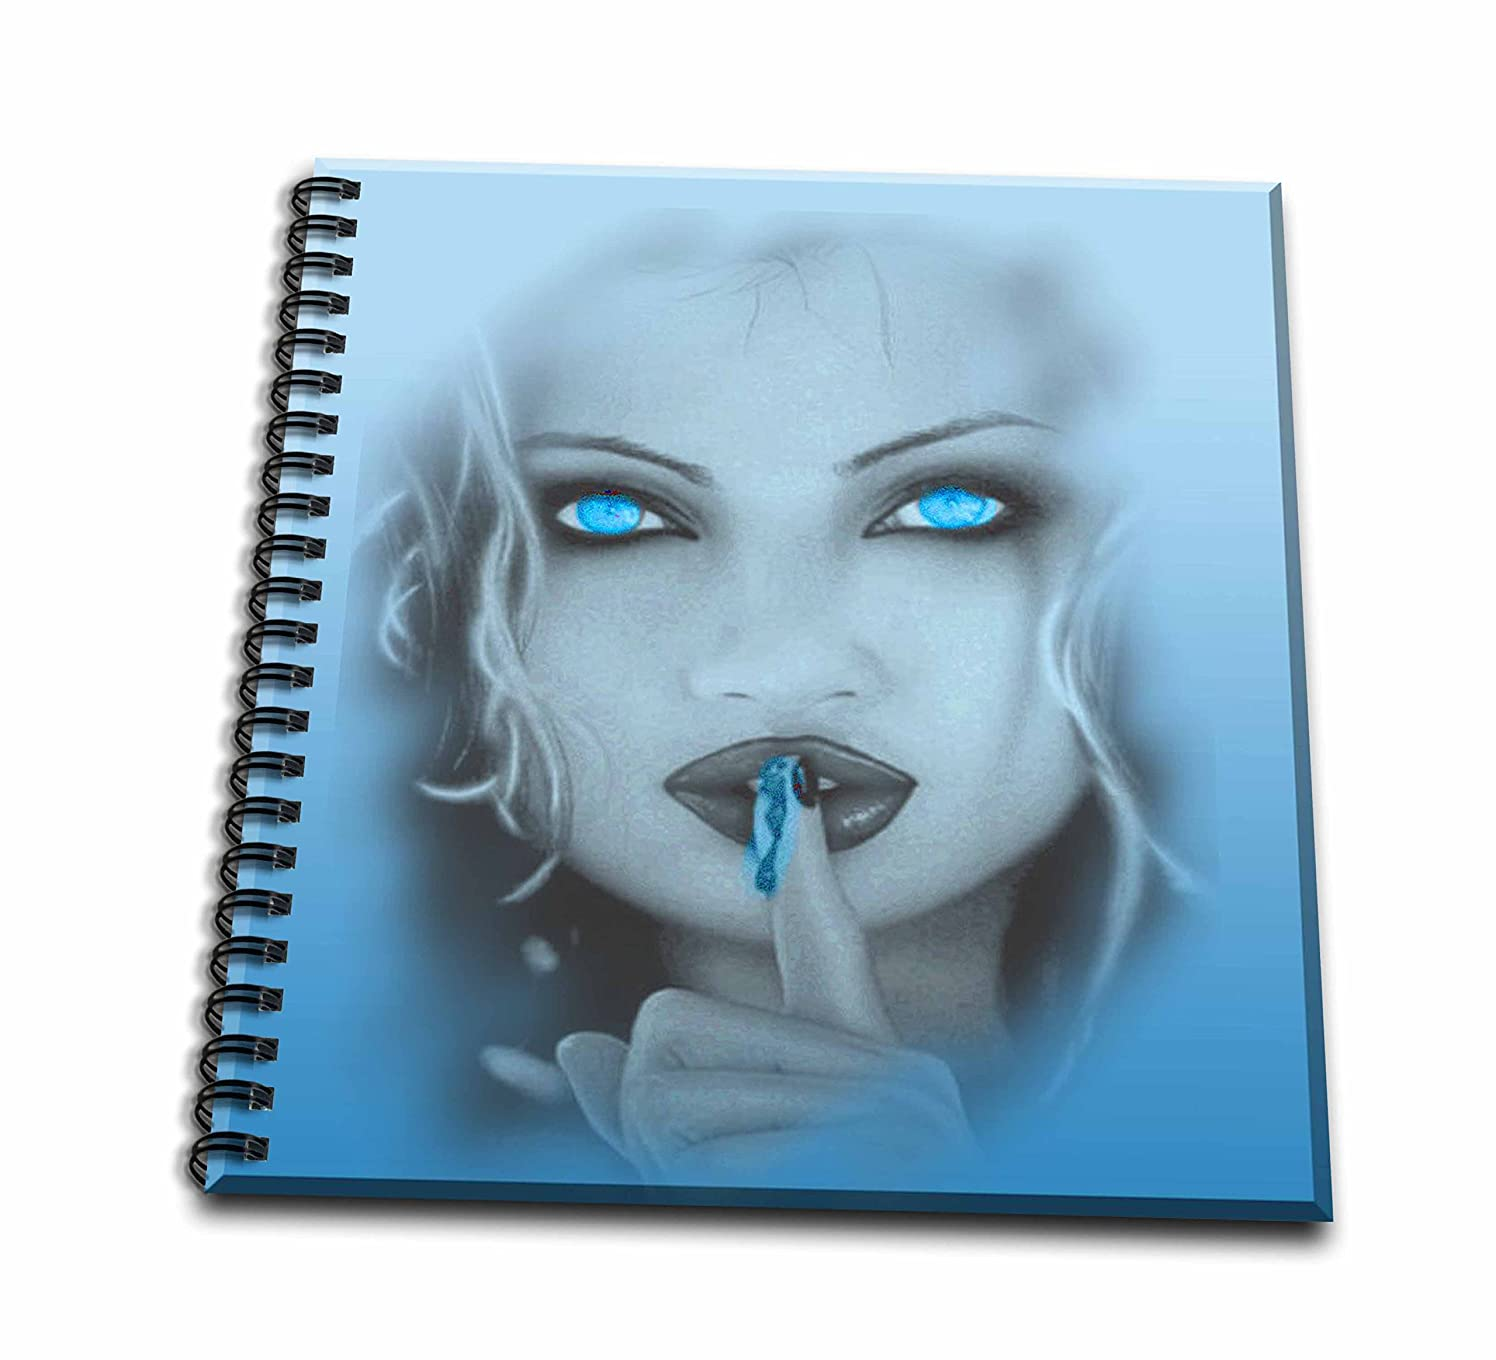 3dRose db_128819_1 Pastel Blue Gothic Lady Drawing Book, 8 by 8-Inch